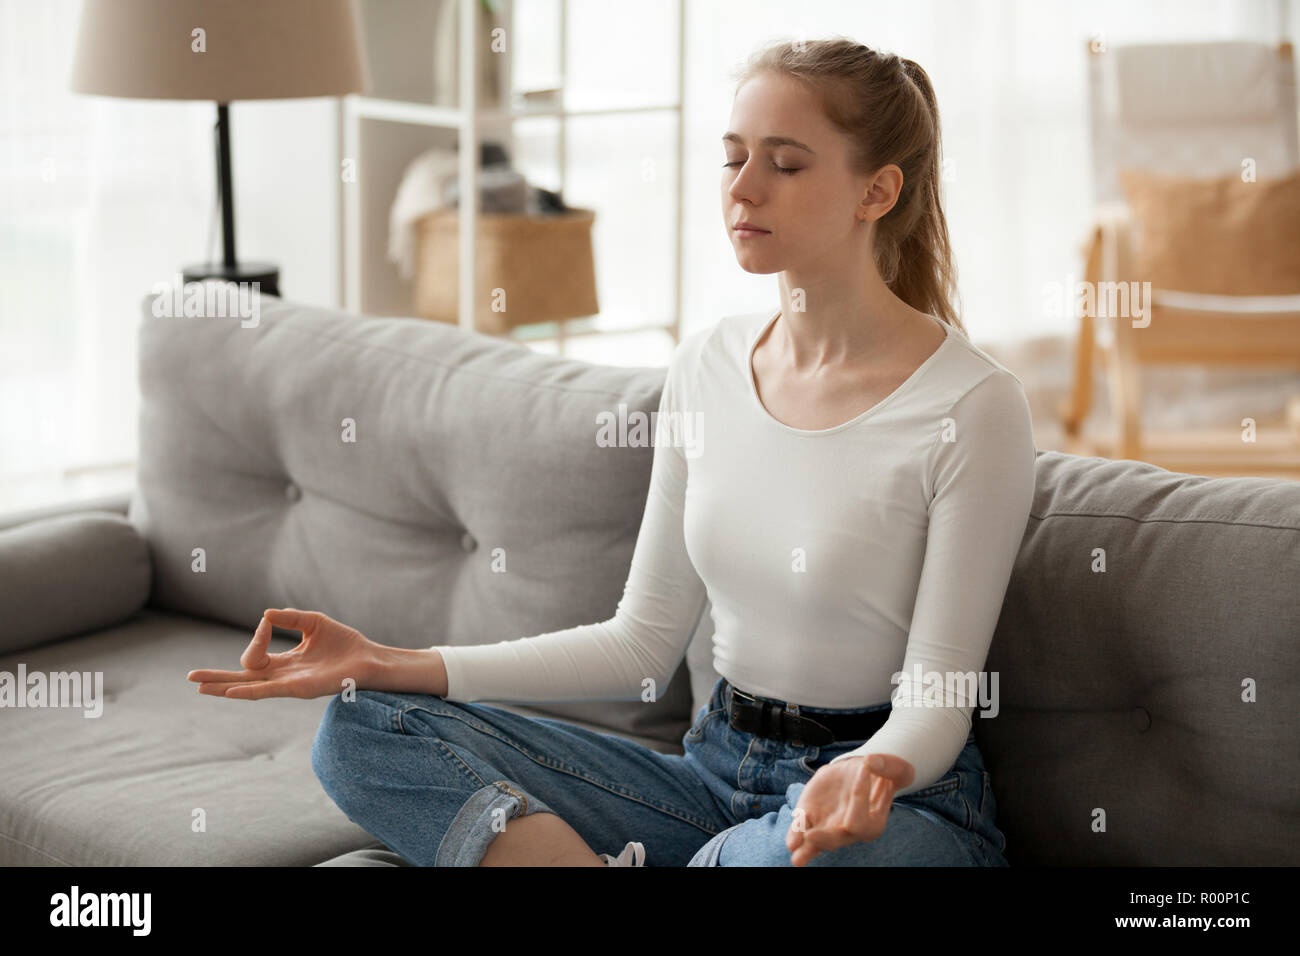 Woman meditating sitting on couch at home - Stock Image